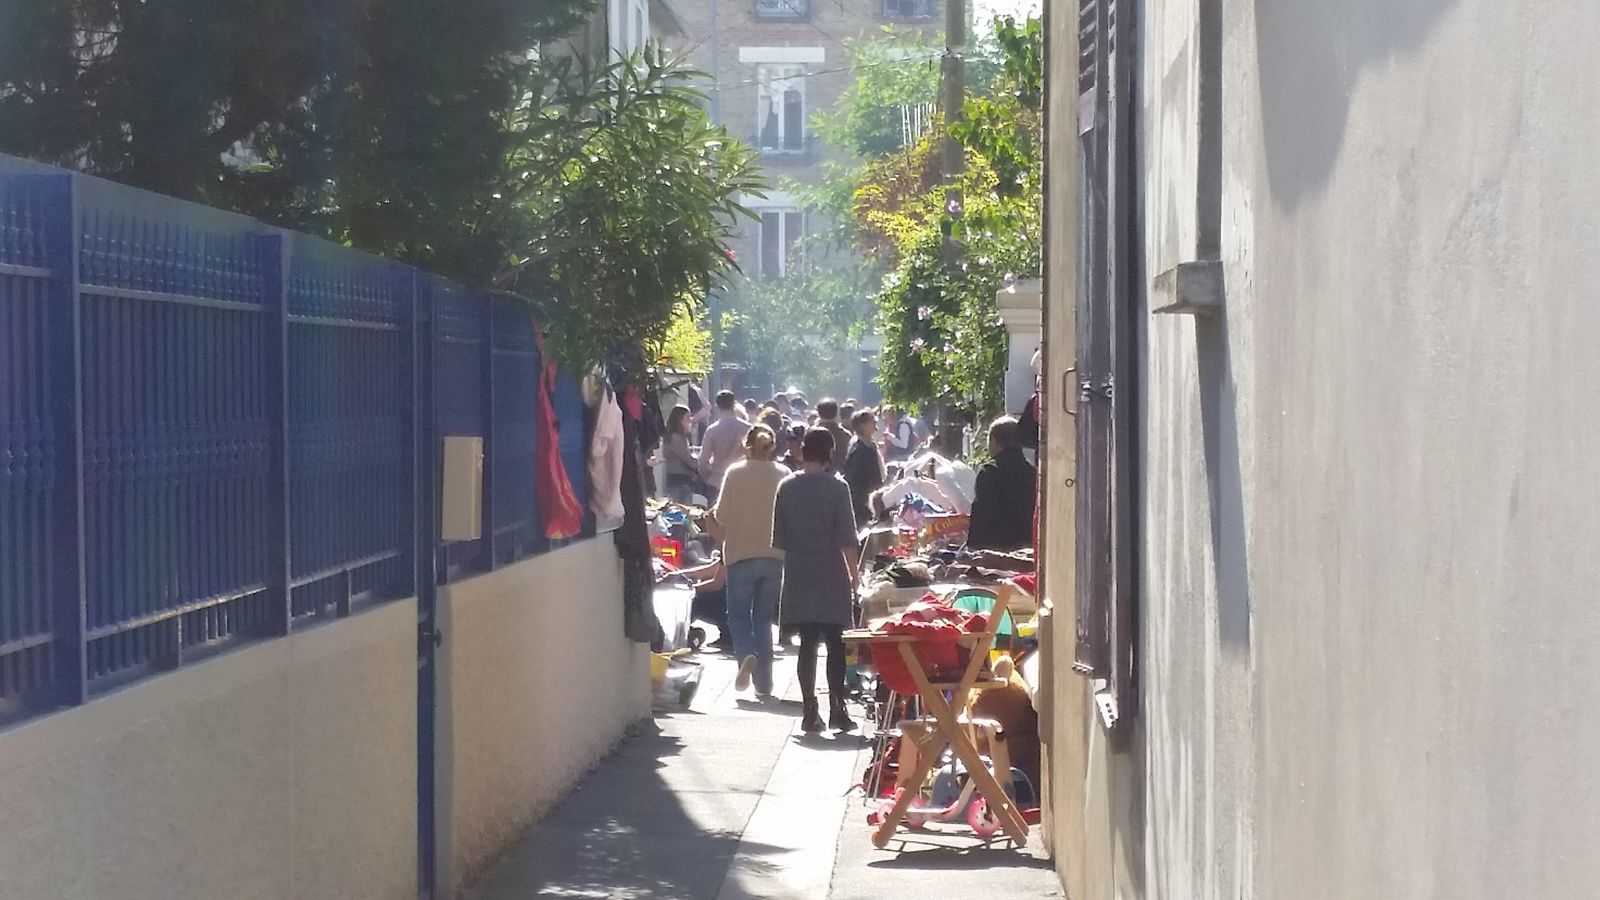 VIDE GRENIER TRÈS AGRÉABLE RUE CHARLES AUGUSTE A COLOMBES